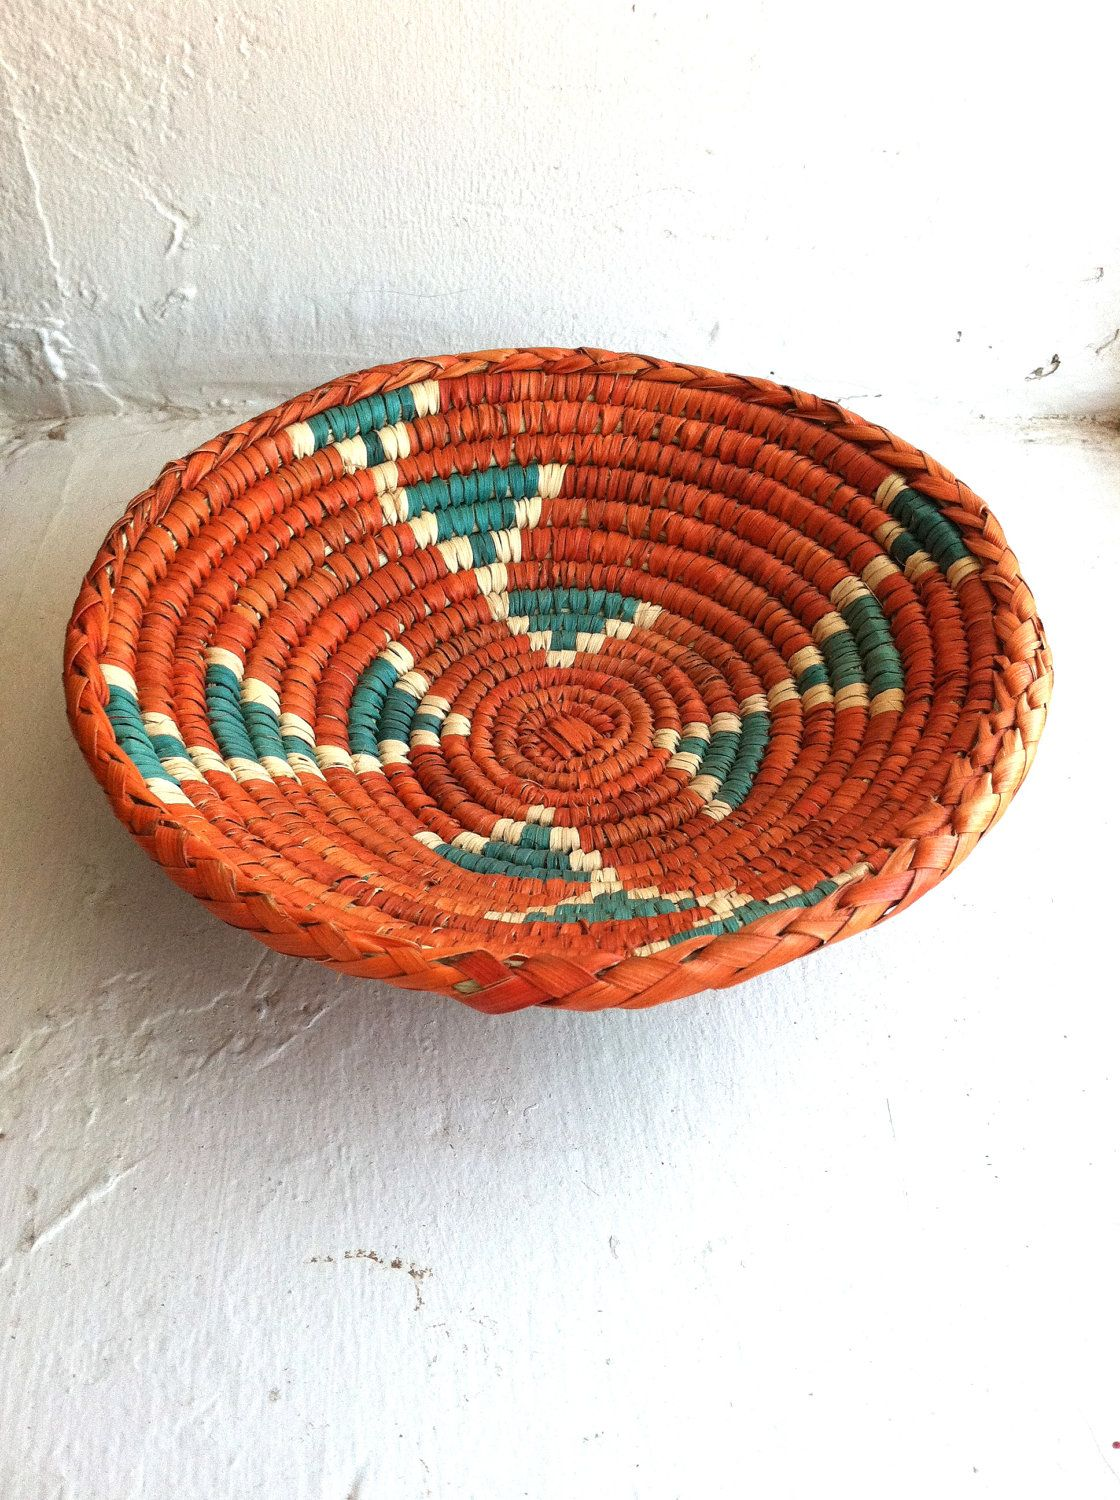 Traditional Native American Basket Weaving : Native american woven basket global life